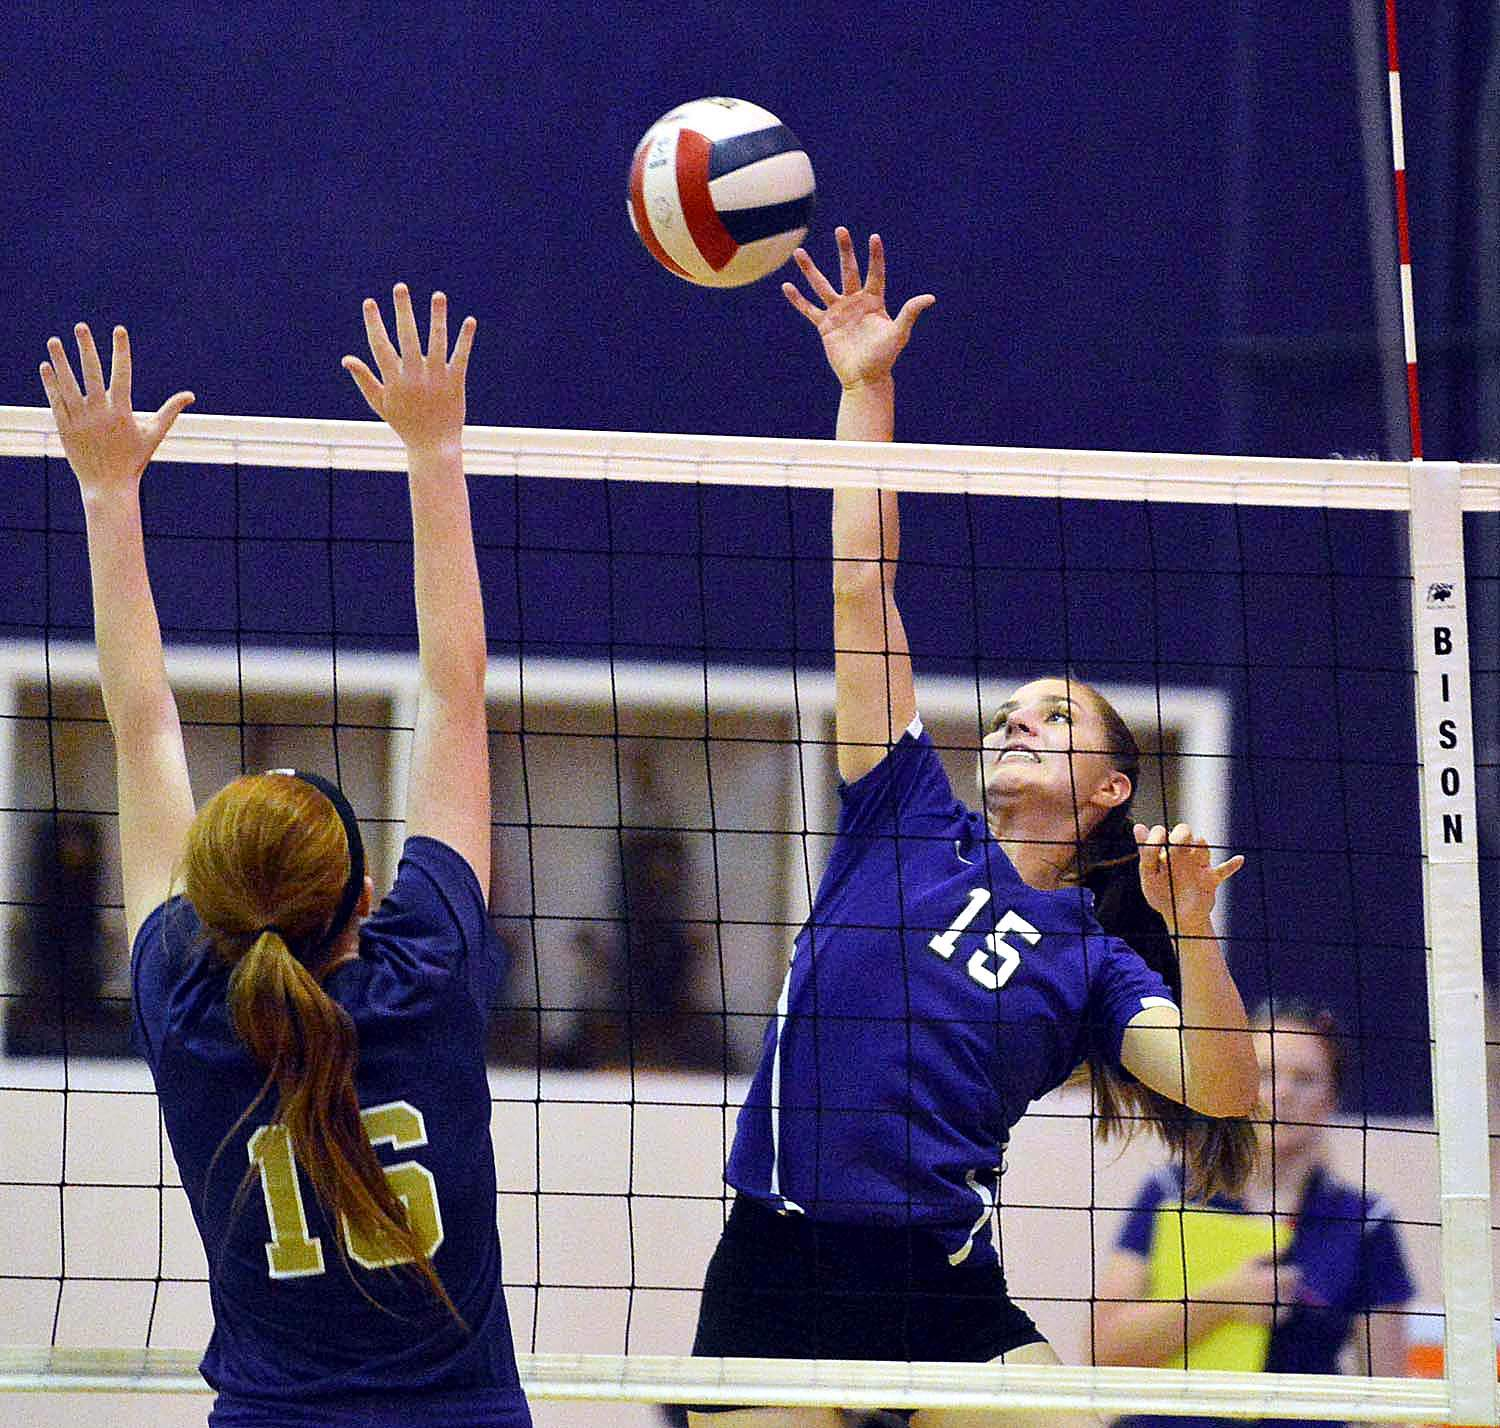 Harrisburg's Madeline Rider drives the ball over the net and outstretched hands of Eldorado's Briley Lenkatis.